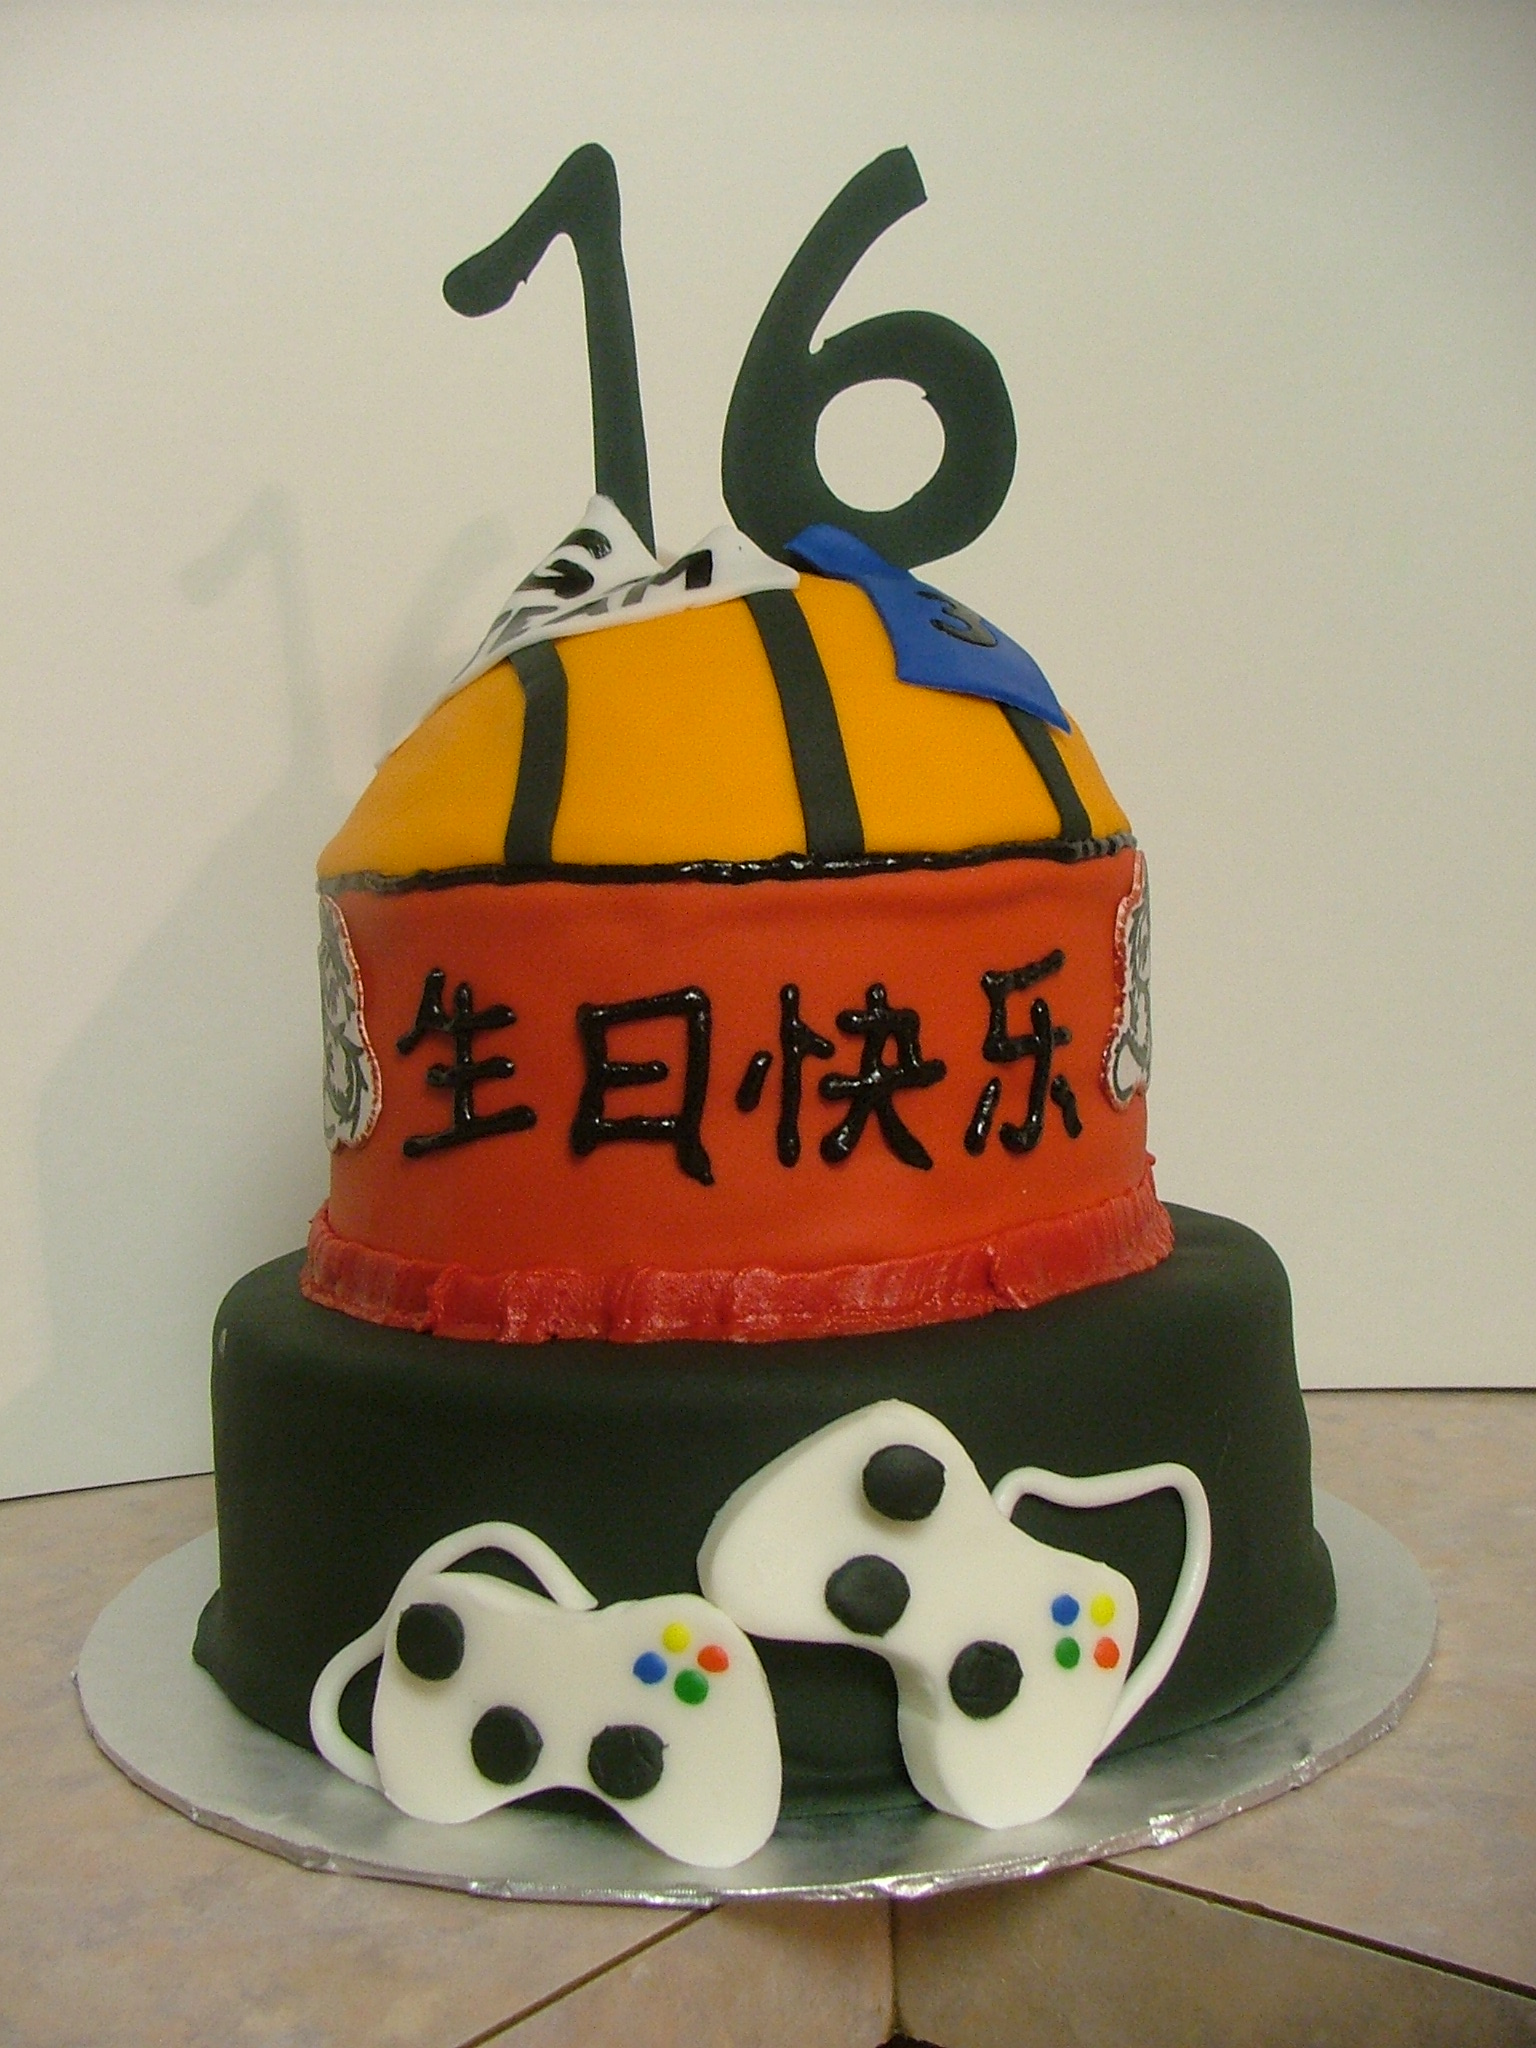 Surprising 8 Sweet 16 Cakes For Boys Photo Blue 16Th Birthday Cakes For Funny Birthday Cards Online Chimdamsfinfo